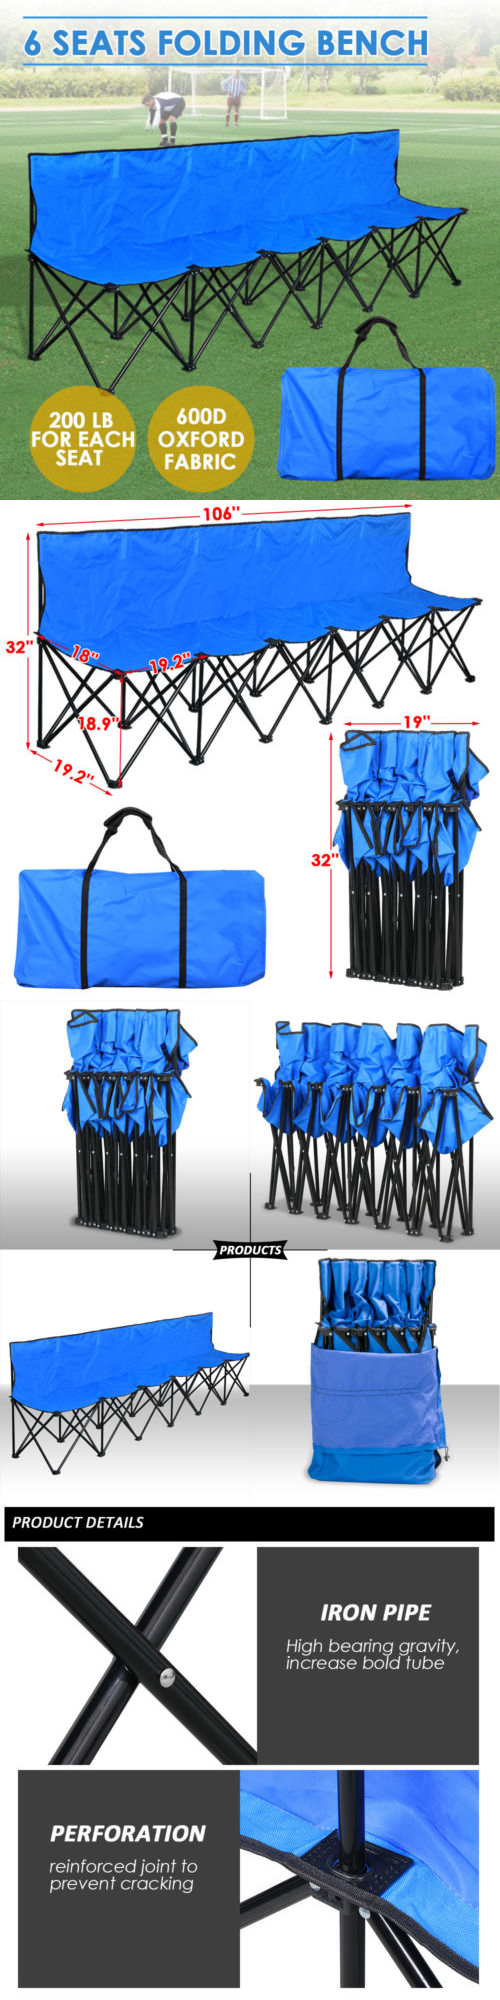 Folding Team Bench Part - 47: Camping Furniture 16038: 6 Seats Portable Folding Team Bench Sports Camping  Backrest No Need To